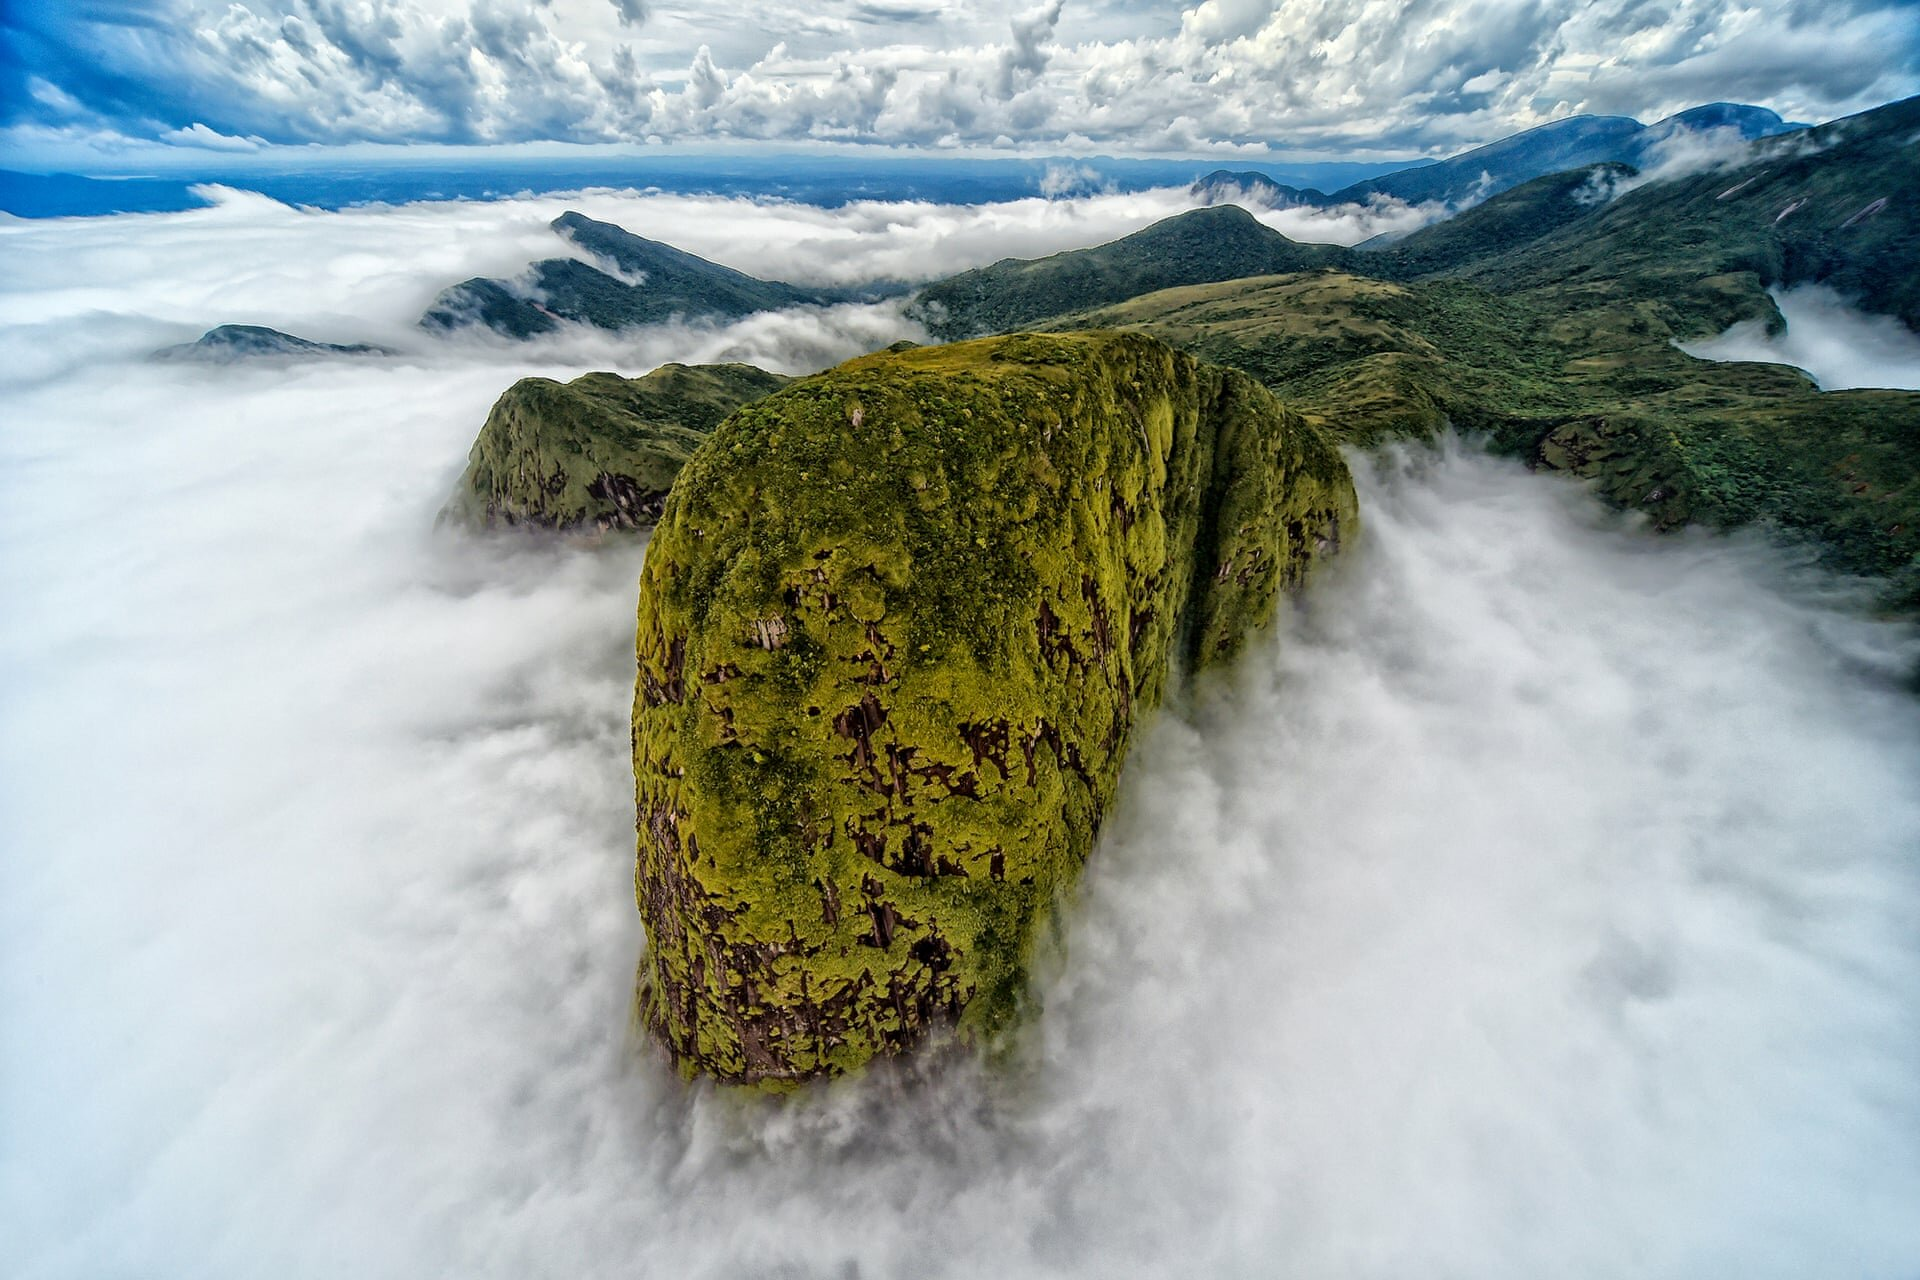 Landscape second place: Denis Ferreira Netto, Brazil'In a helicopter flight through the sea mountain range, I came across this white cloud cover, which resulted in this magnificent image that resembles the head of a dinosaur,' the photographer saidPhotograph: Denis Ferreira Netto/TNC photo contest 2021